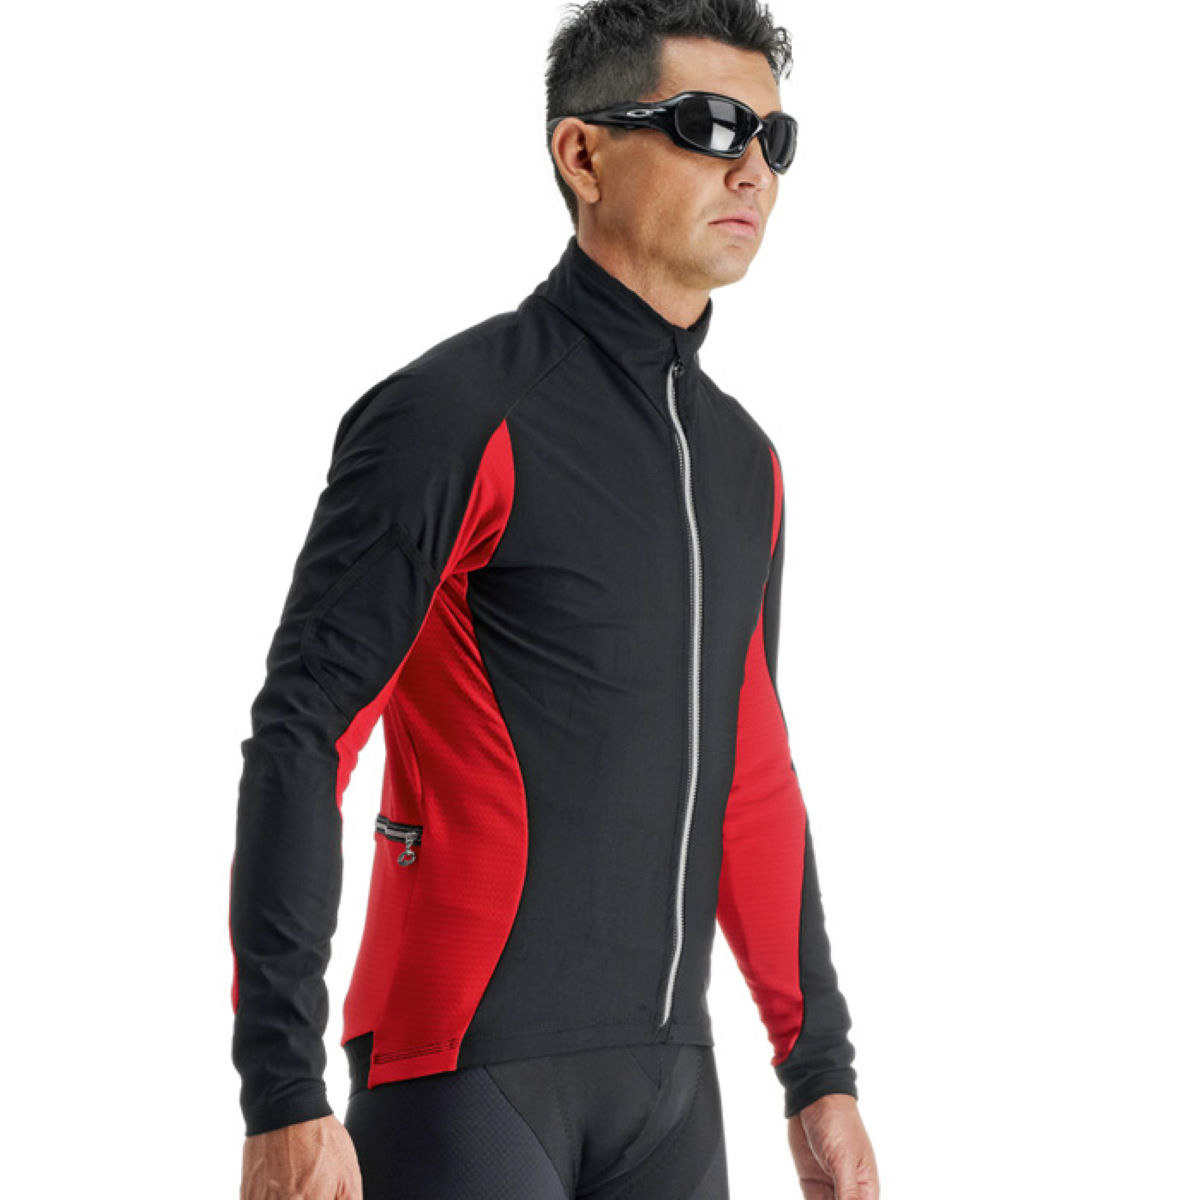 Veste coupe-vent Assos iJ.HaBu5 - S Red Swiss Coupe-vents vélo